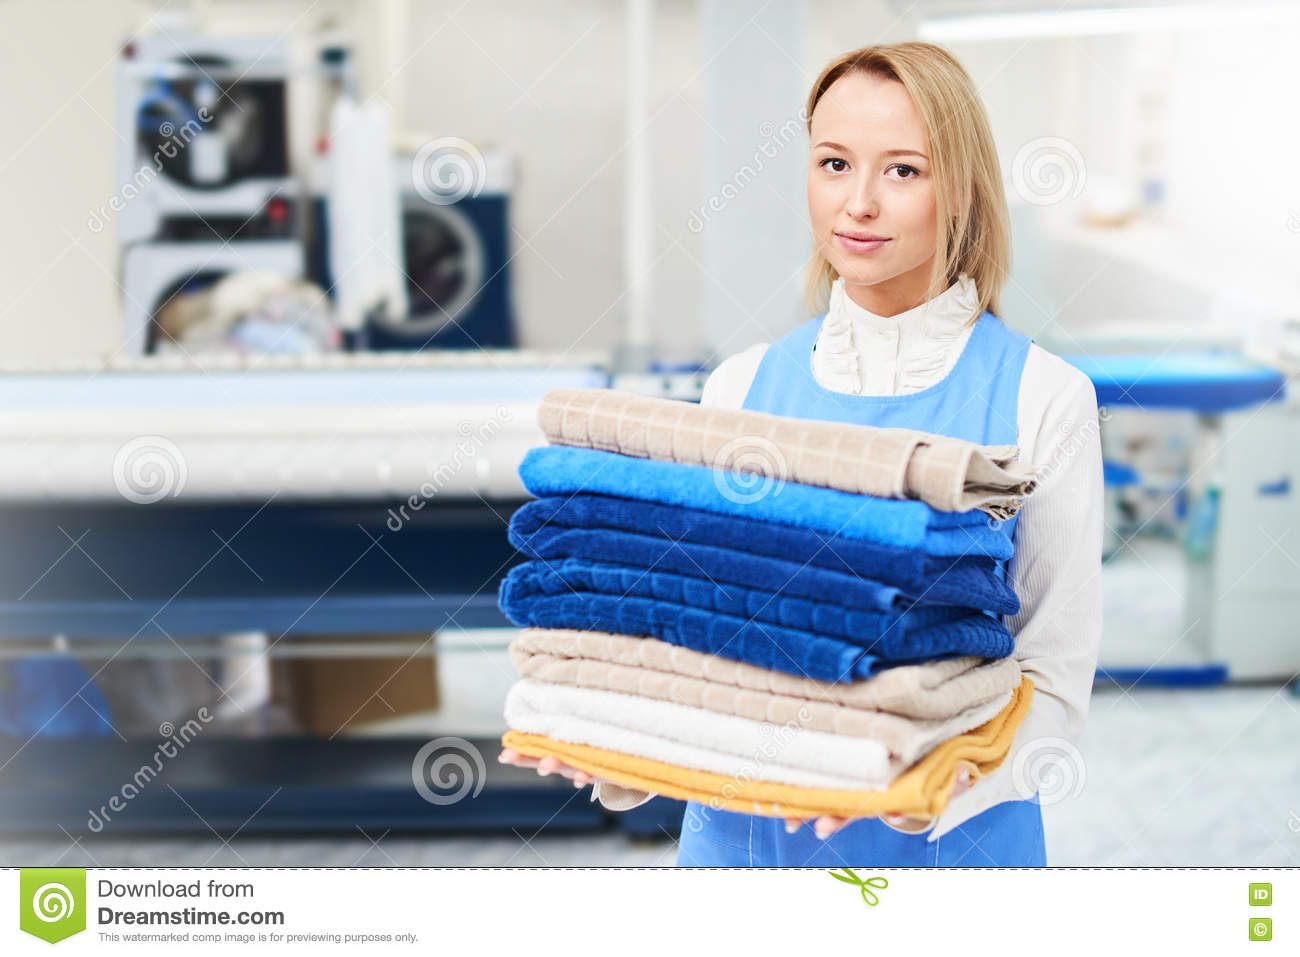 Portrait of a girl Laundry worker holding a clean towel